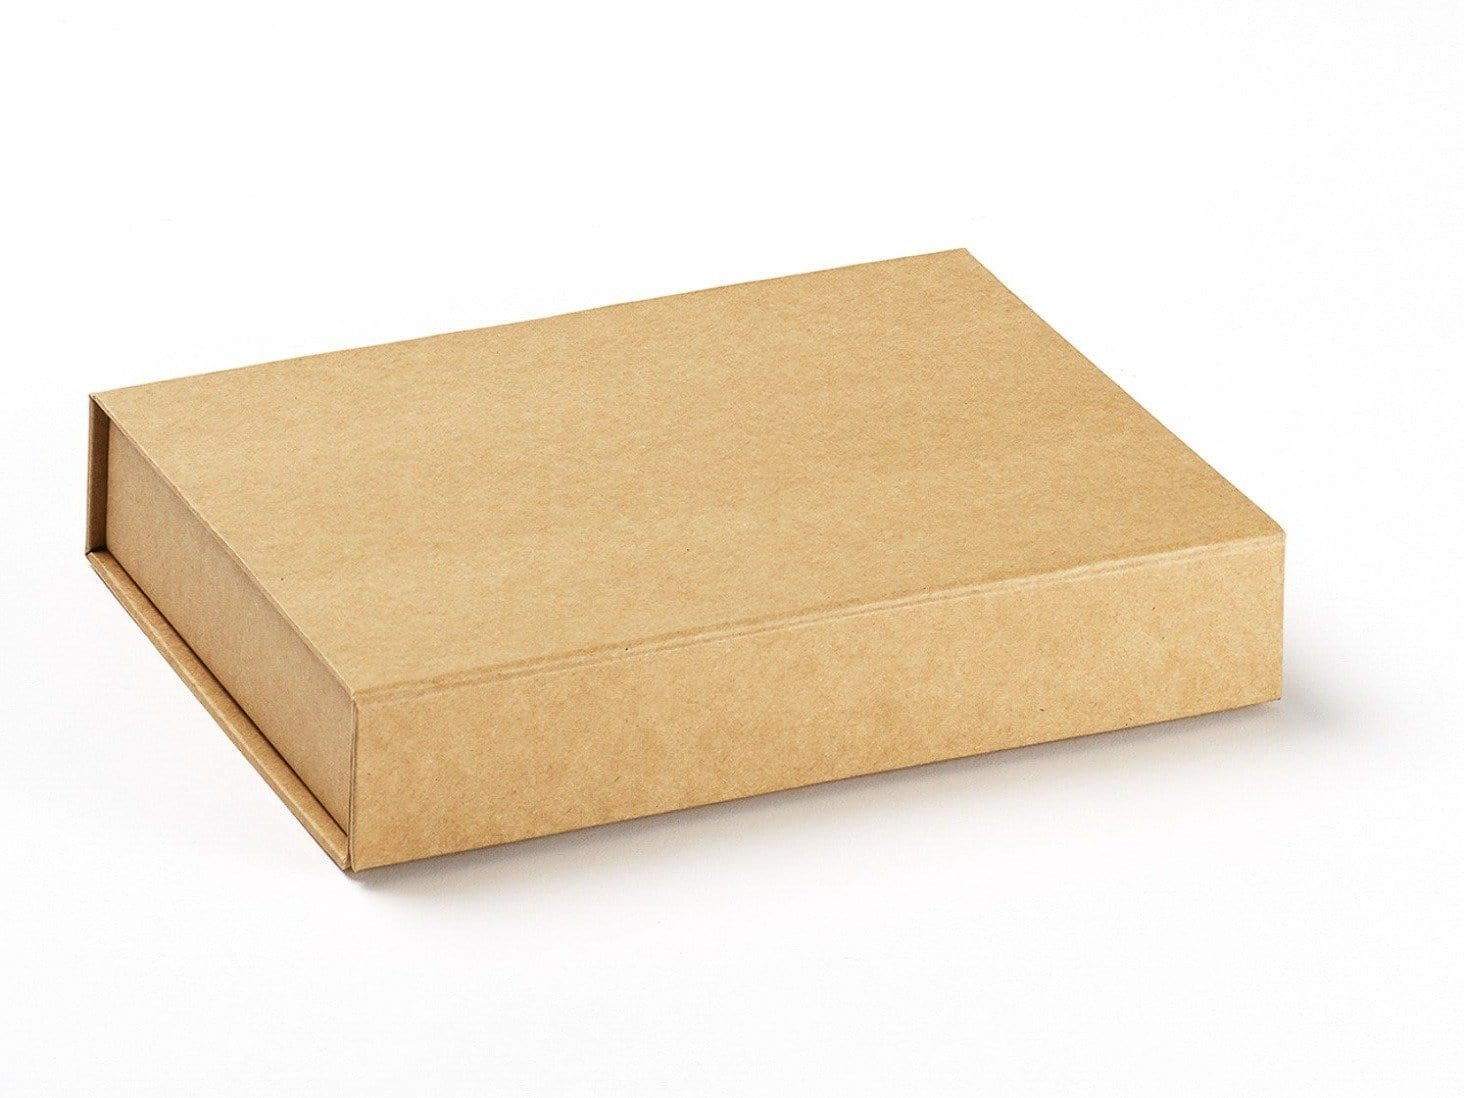 A5 Shallow Natural Kraft Gift Box for Organic and Eco-Friendly Product Packaging